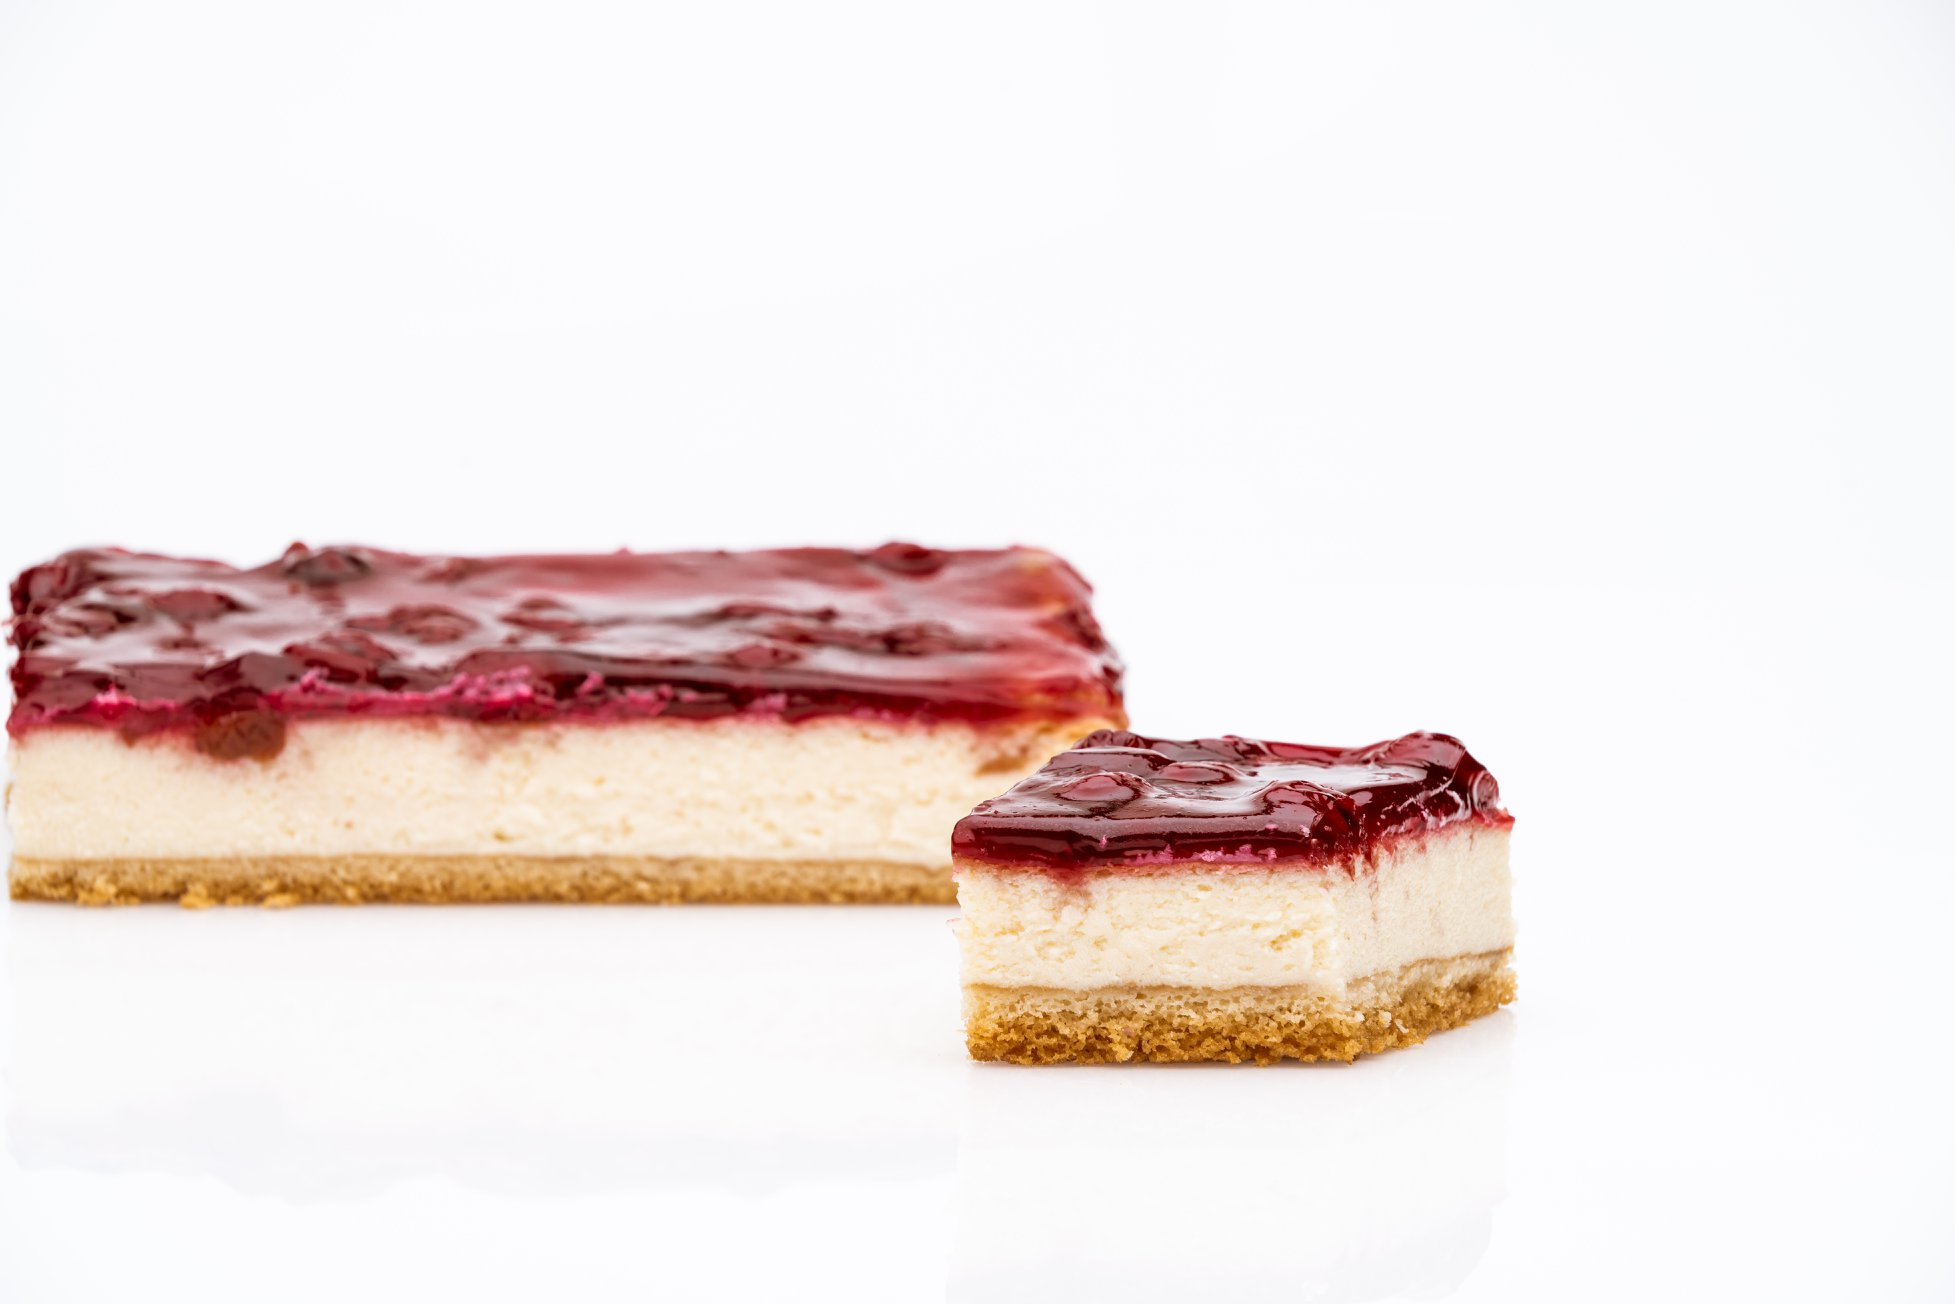 Cherry Baked Cheesecake